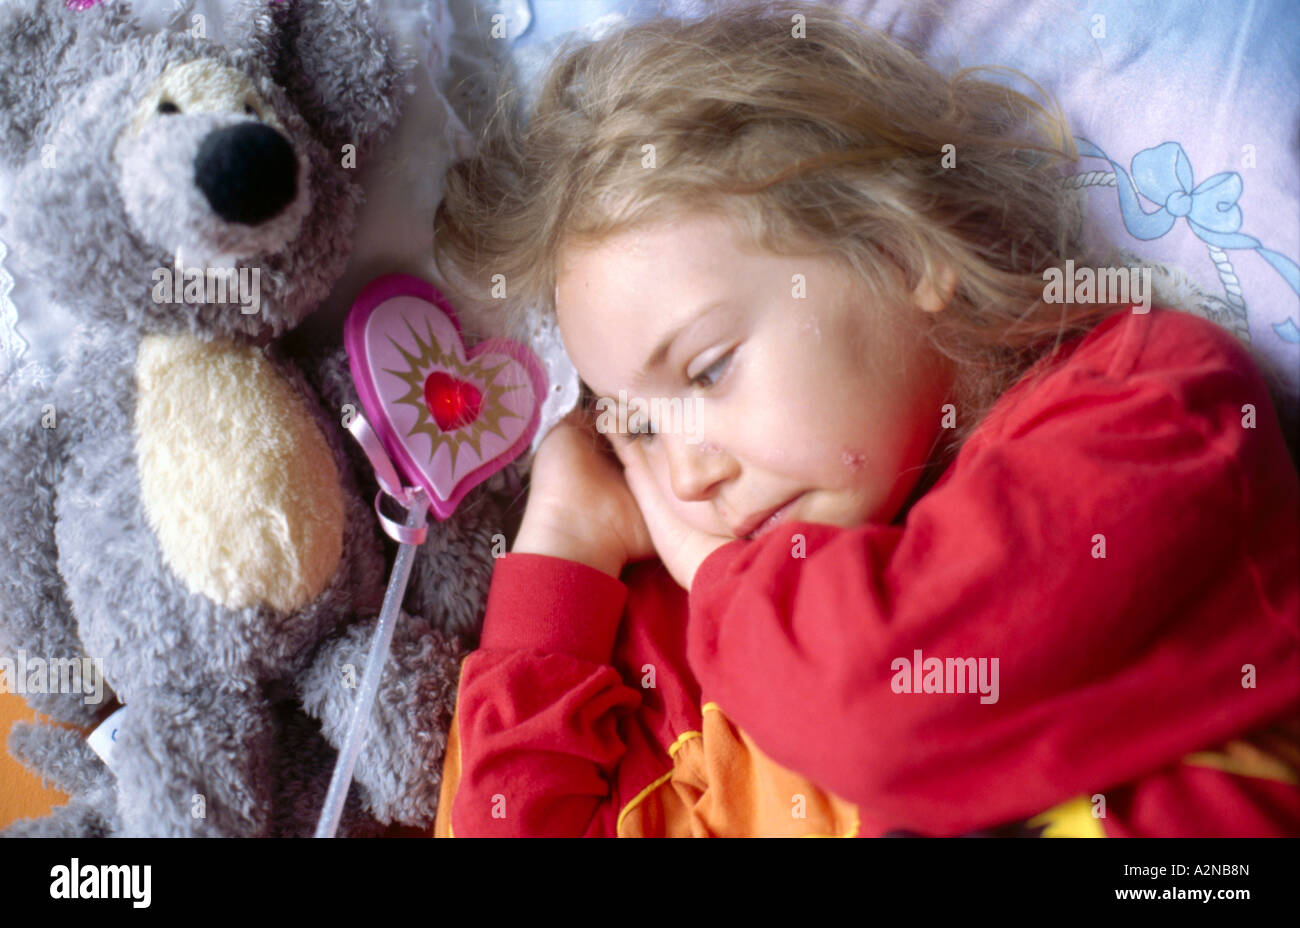 Close-up of girl lying besides teddy bear - Stock Image